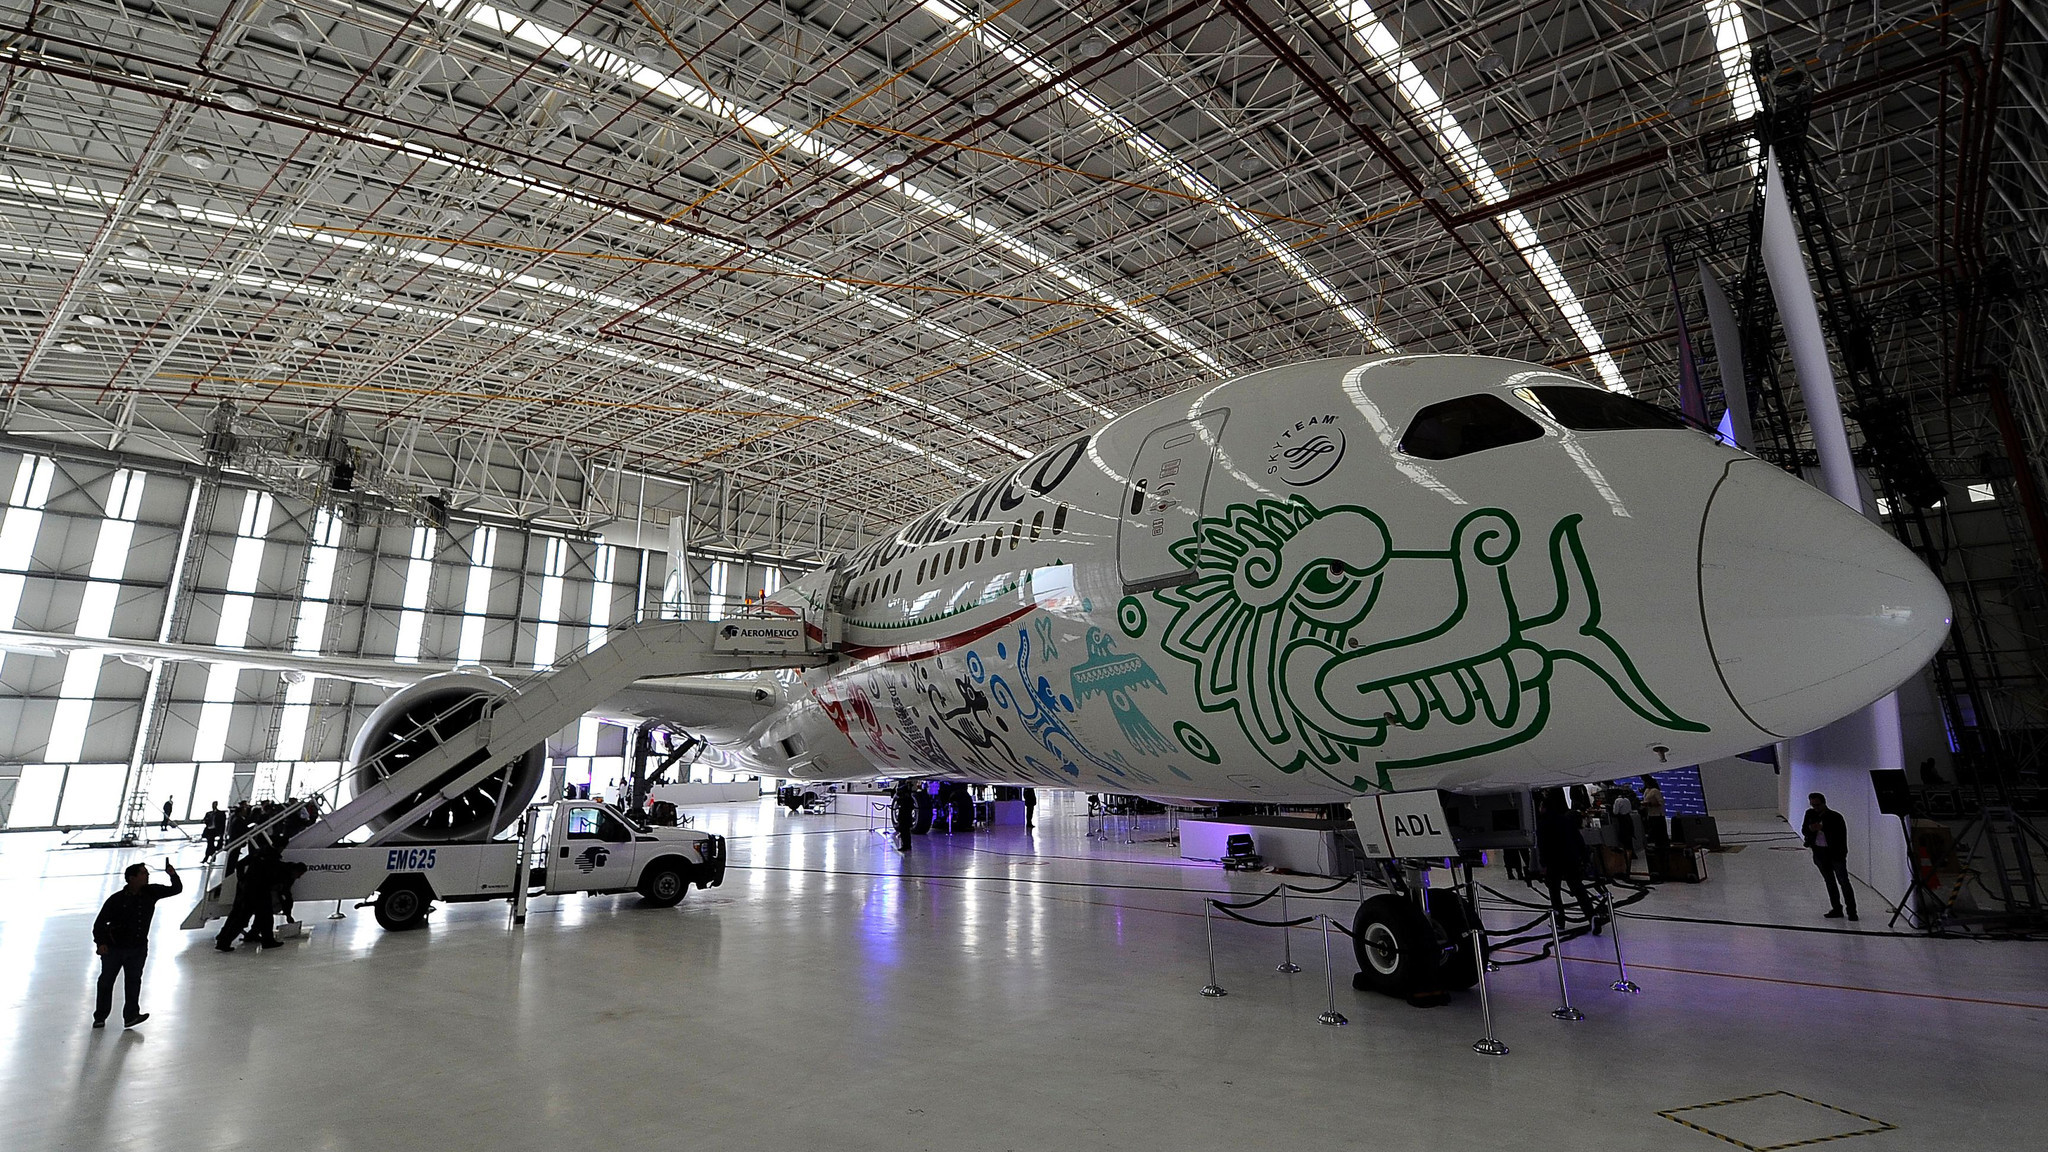 An Aeromexico Boeing 787-9 Dreamliner, called Quetzalcoatl, is unveiled in Mexico City on Oct. 20.  Delta has invested in Aeromexico to help capitalize on the travel demand between Mexico and the United States.